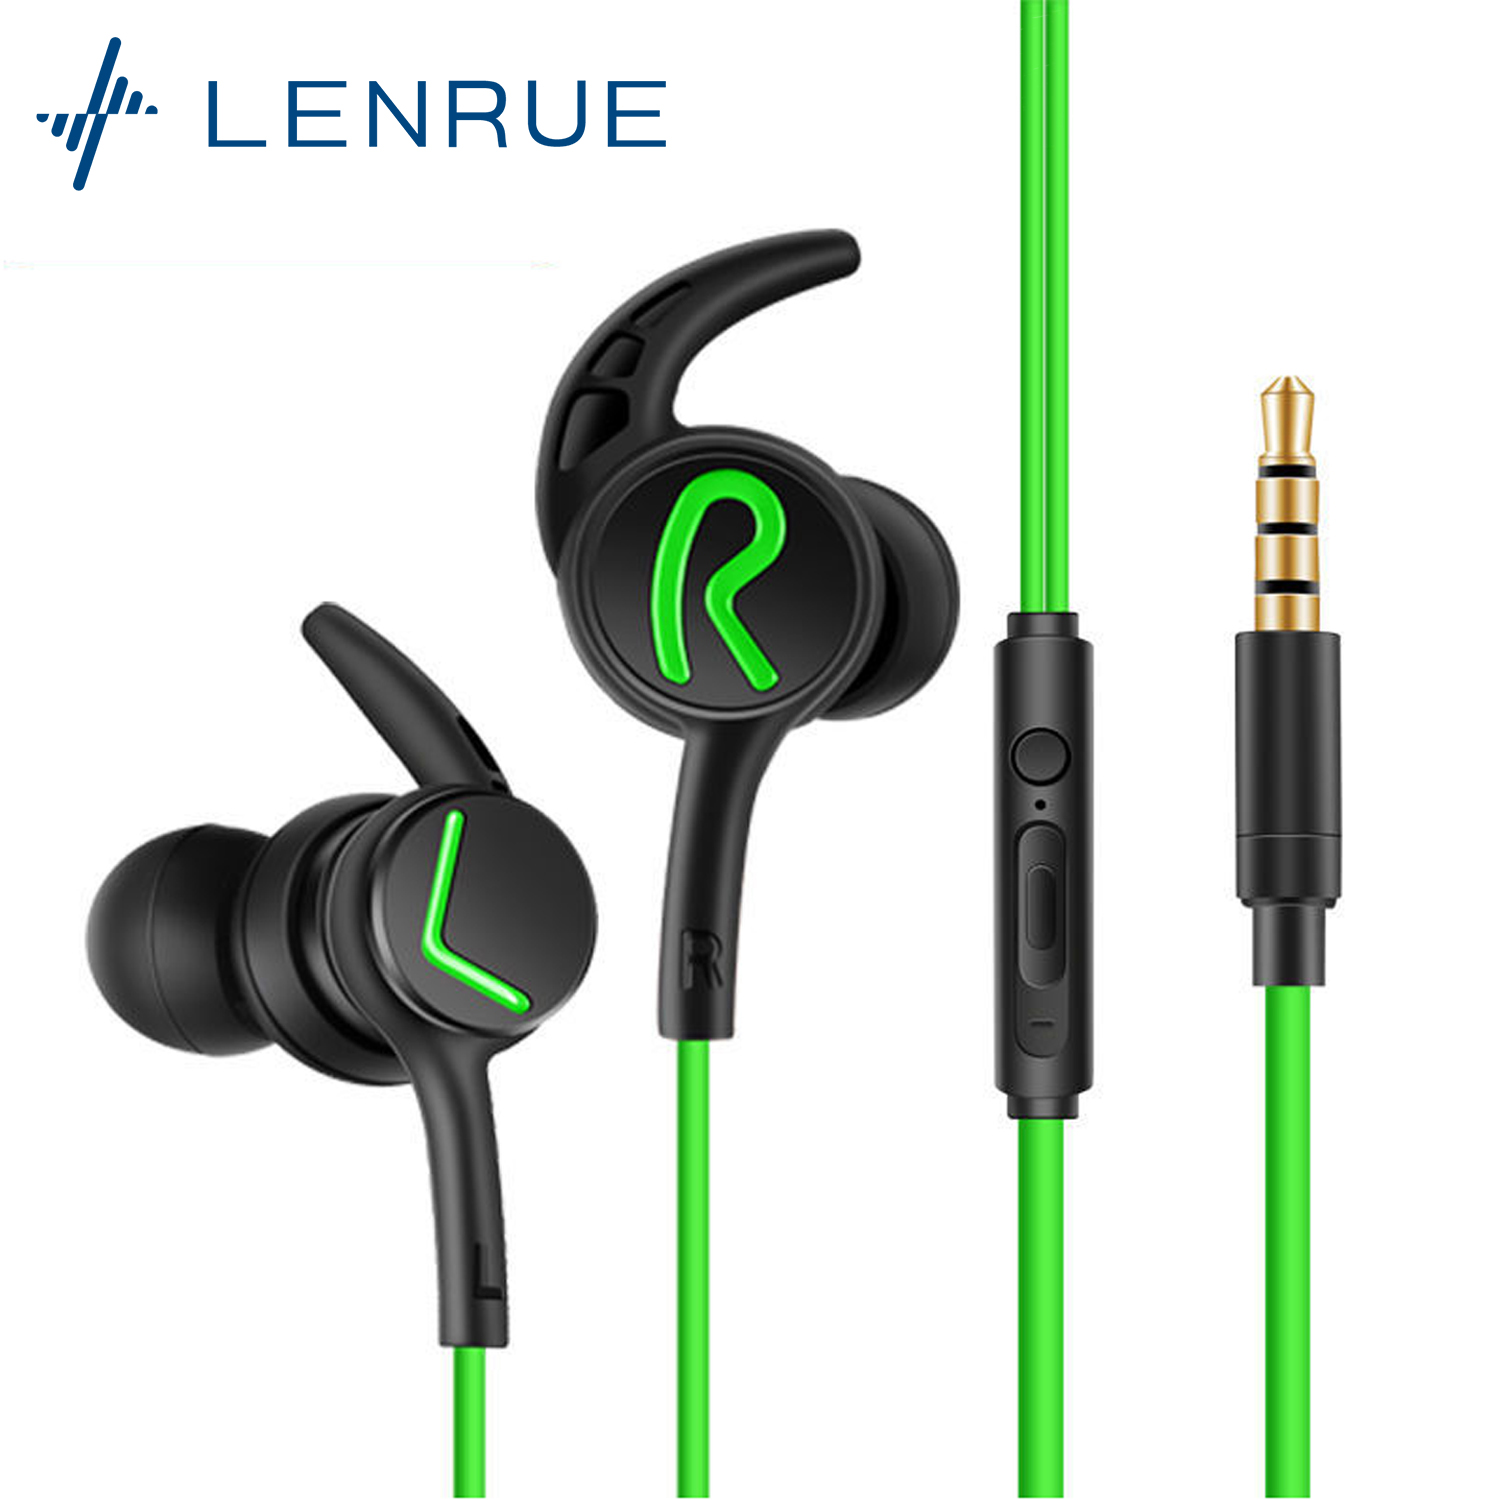 Lenrue A6 Game Earphone Earbuds With Built-in Microphone 3.5mm Jack or Type-C In-Ear Wired Earphones For Gaming Phone Laptop